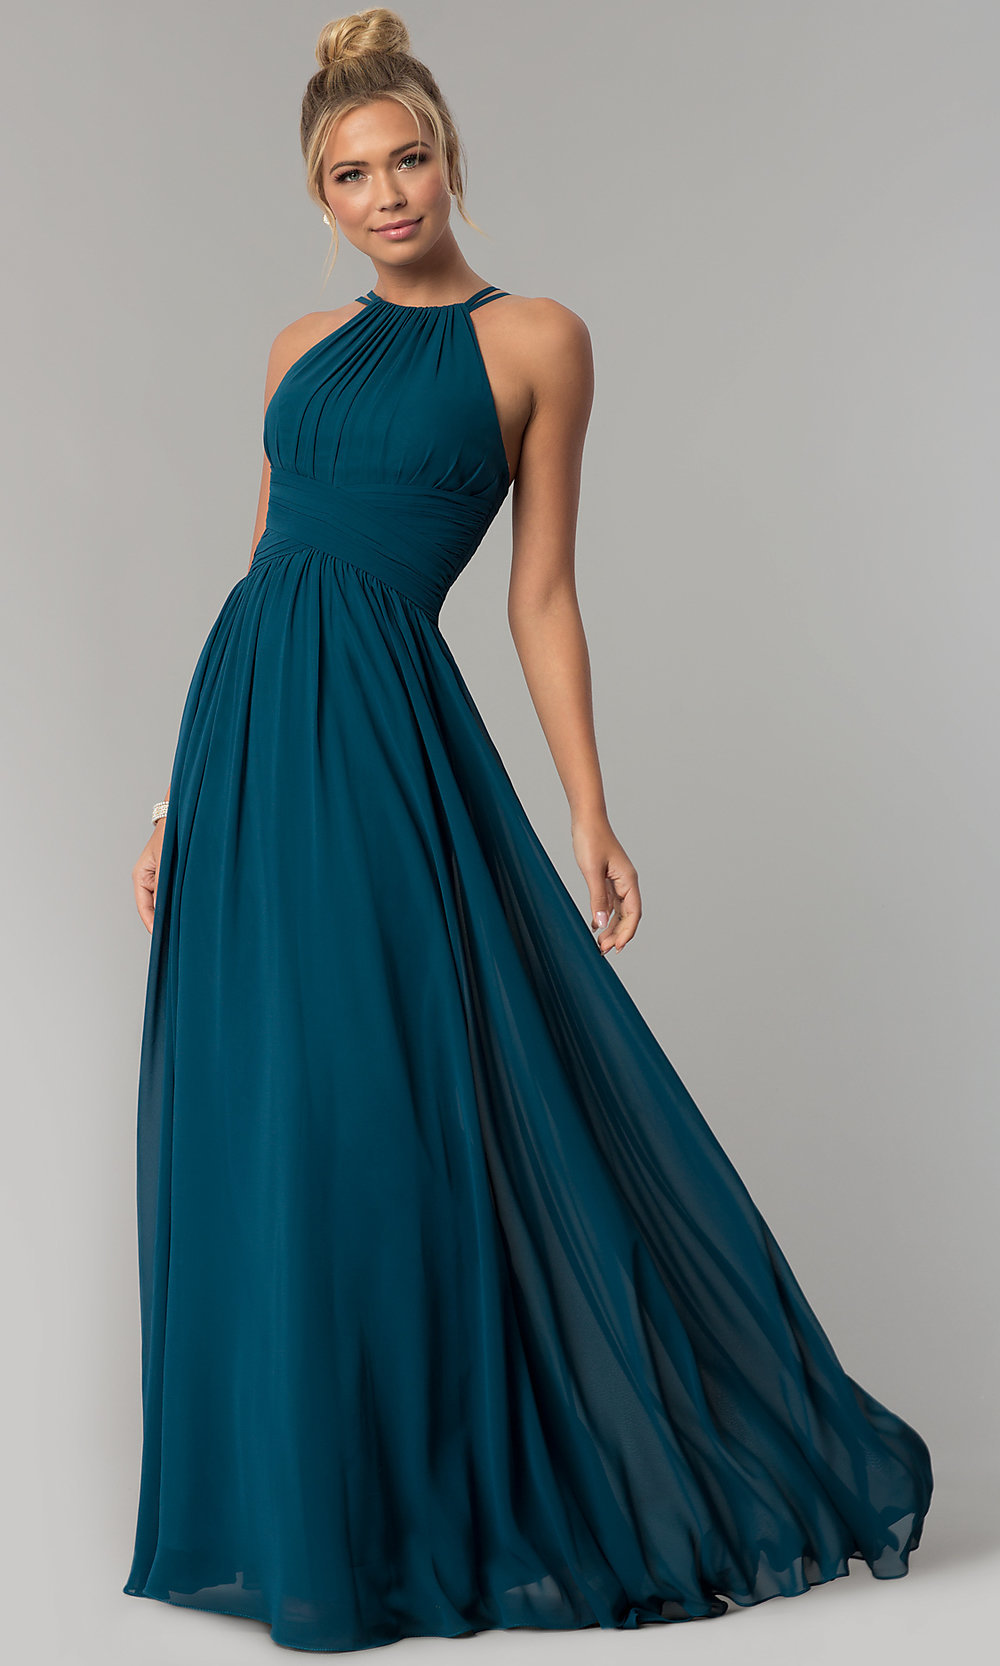 Chiffon High-Neck Ruched Long Prom Dress - PromGirl